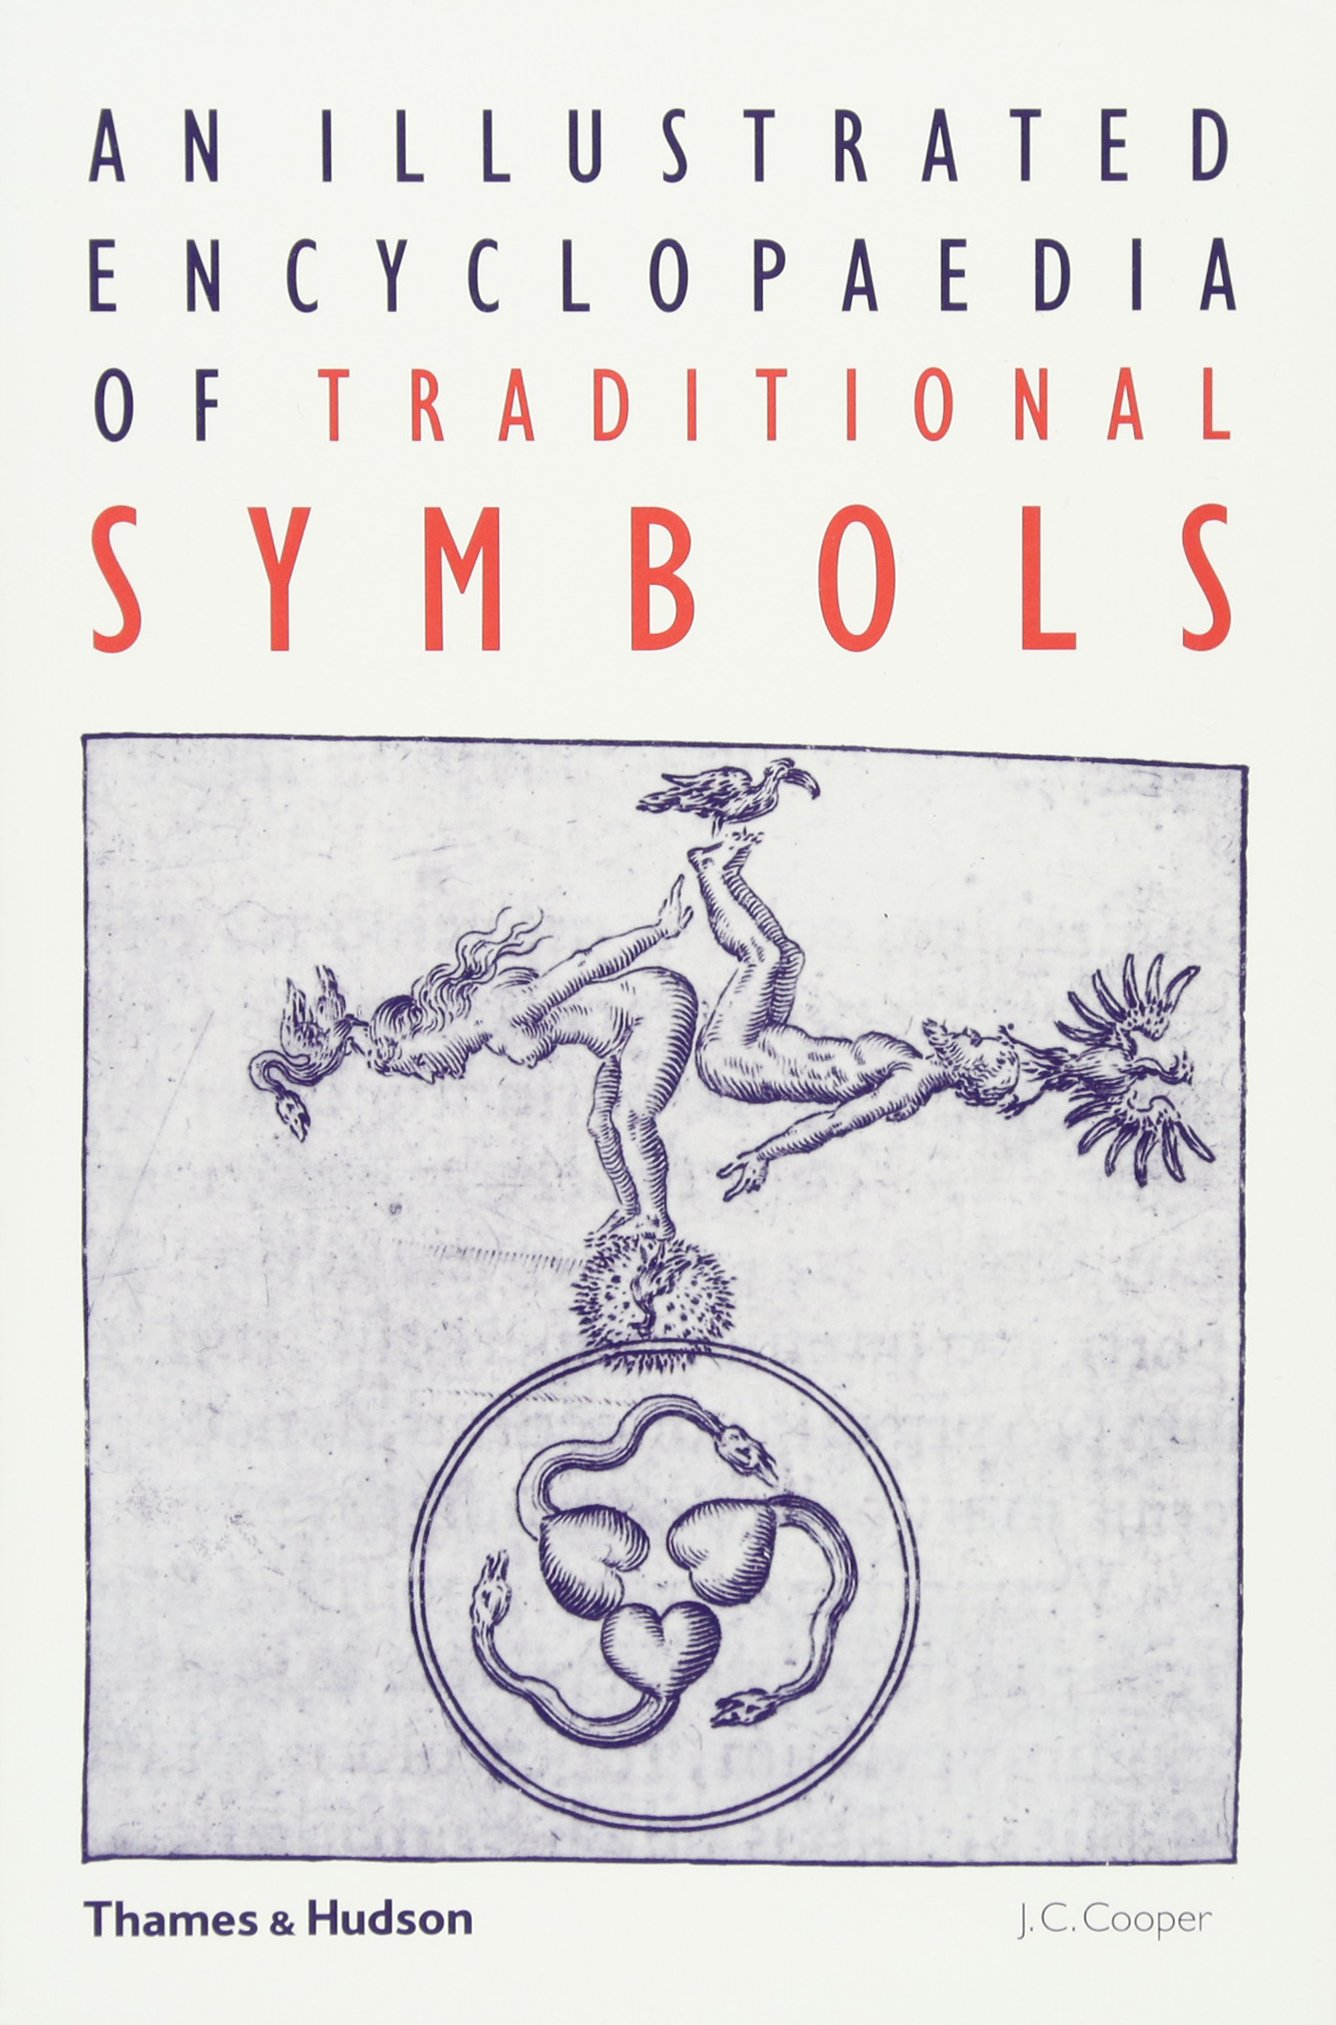 An illustrated encyclopaedia of traditional symbols j c cooper an illustrated encyclopaedia of traditional symbols j c cooper 9780500271254 amazon books buycottarizona Choice Image